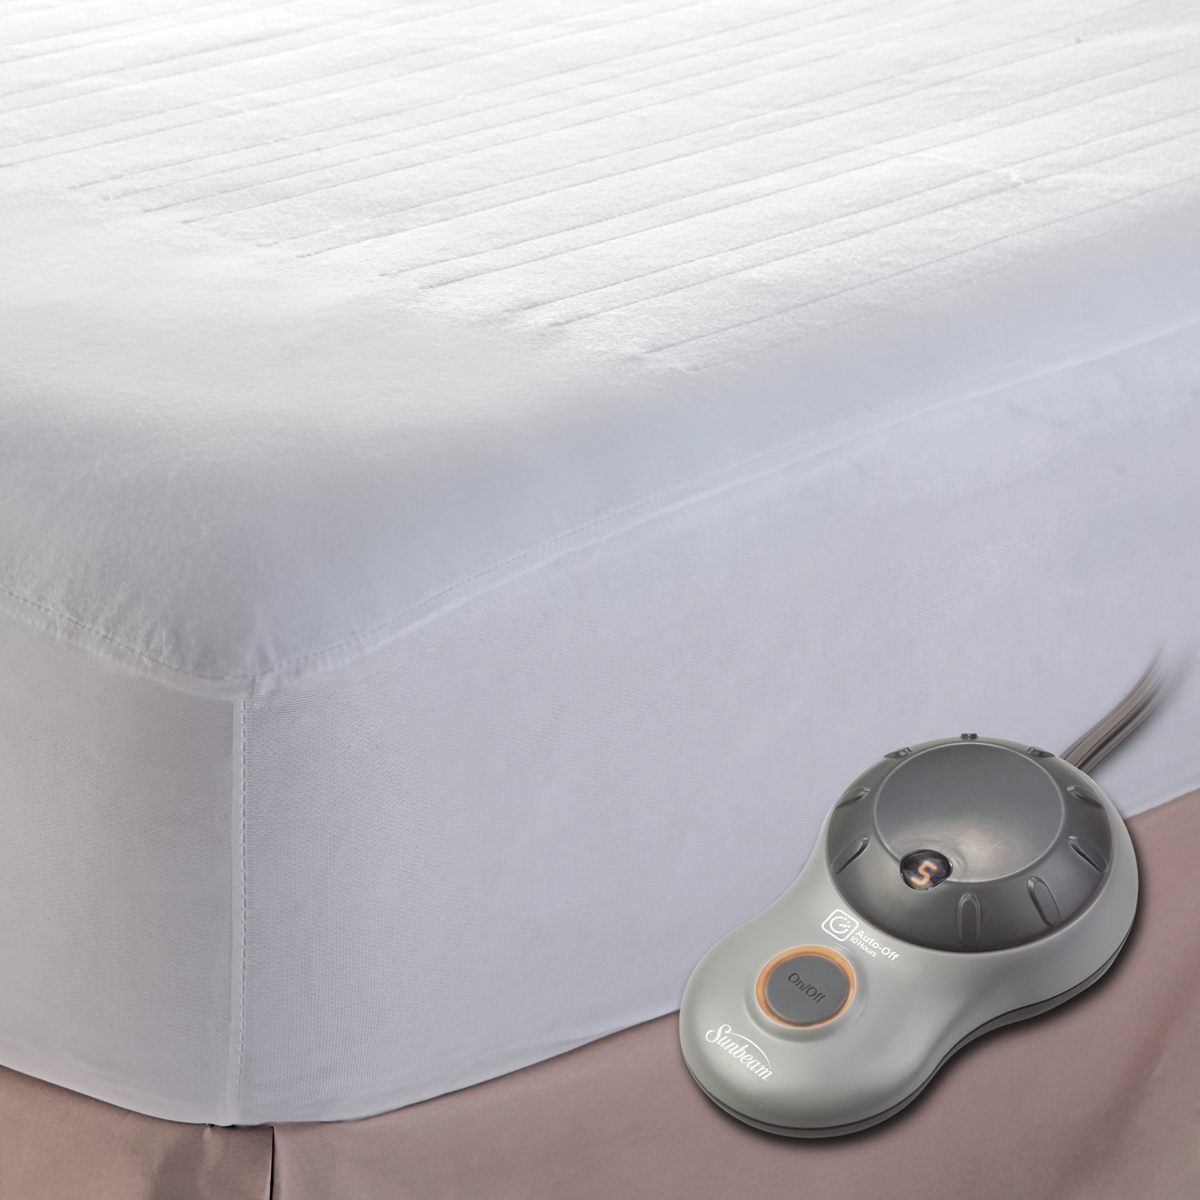 sunbeam electric mattress pad Sunbeam Quilted Heated Mattress Pad   Walmart.com sunbeam electric mattress pad